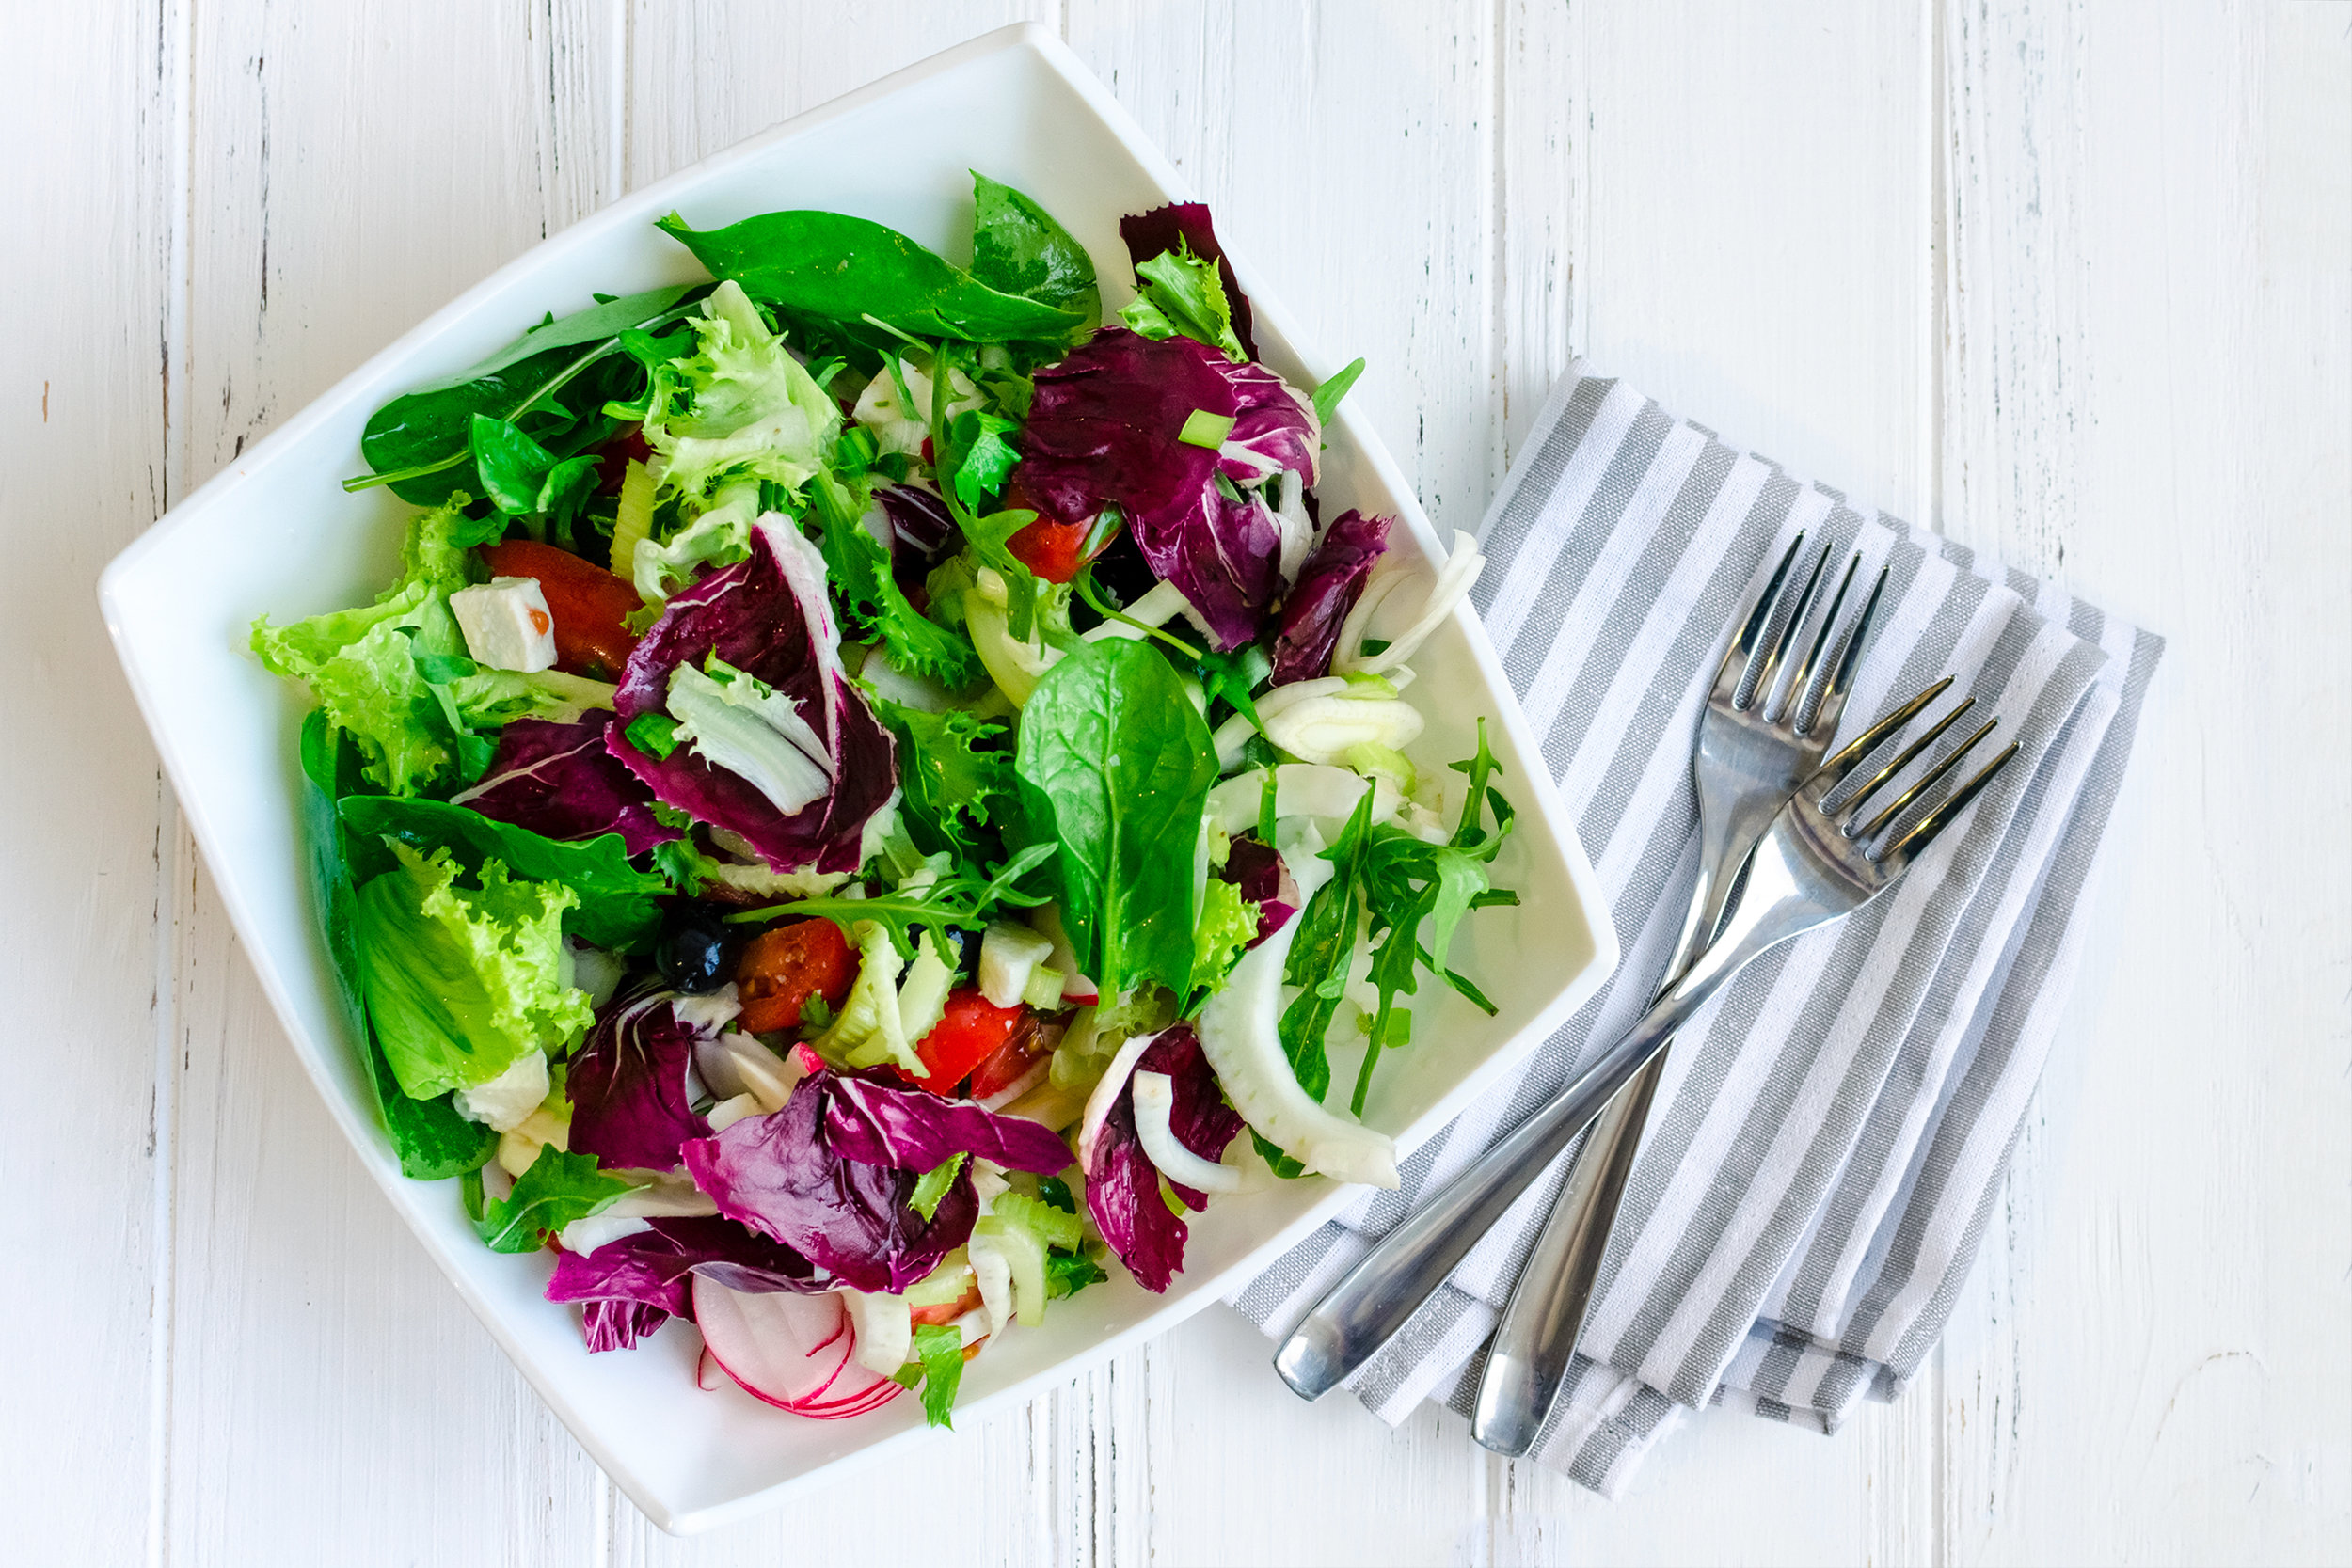 Fresh-summer-green-salad-mix-on-a-wooden-table-859364404_2528x1686.jpeg